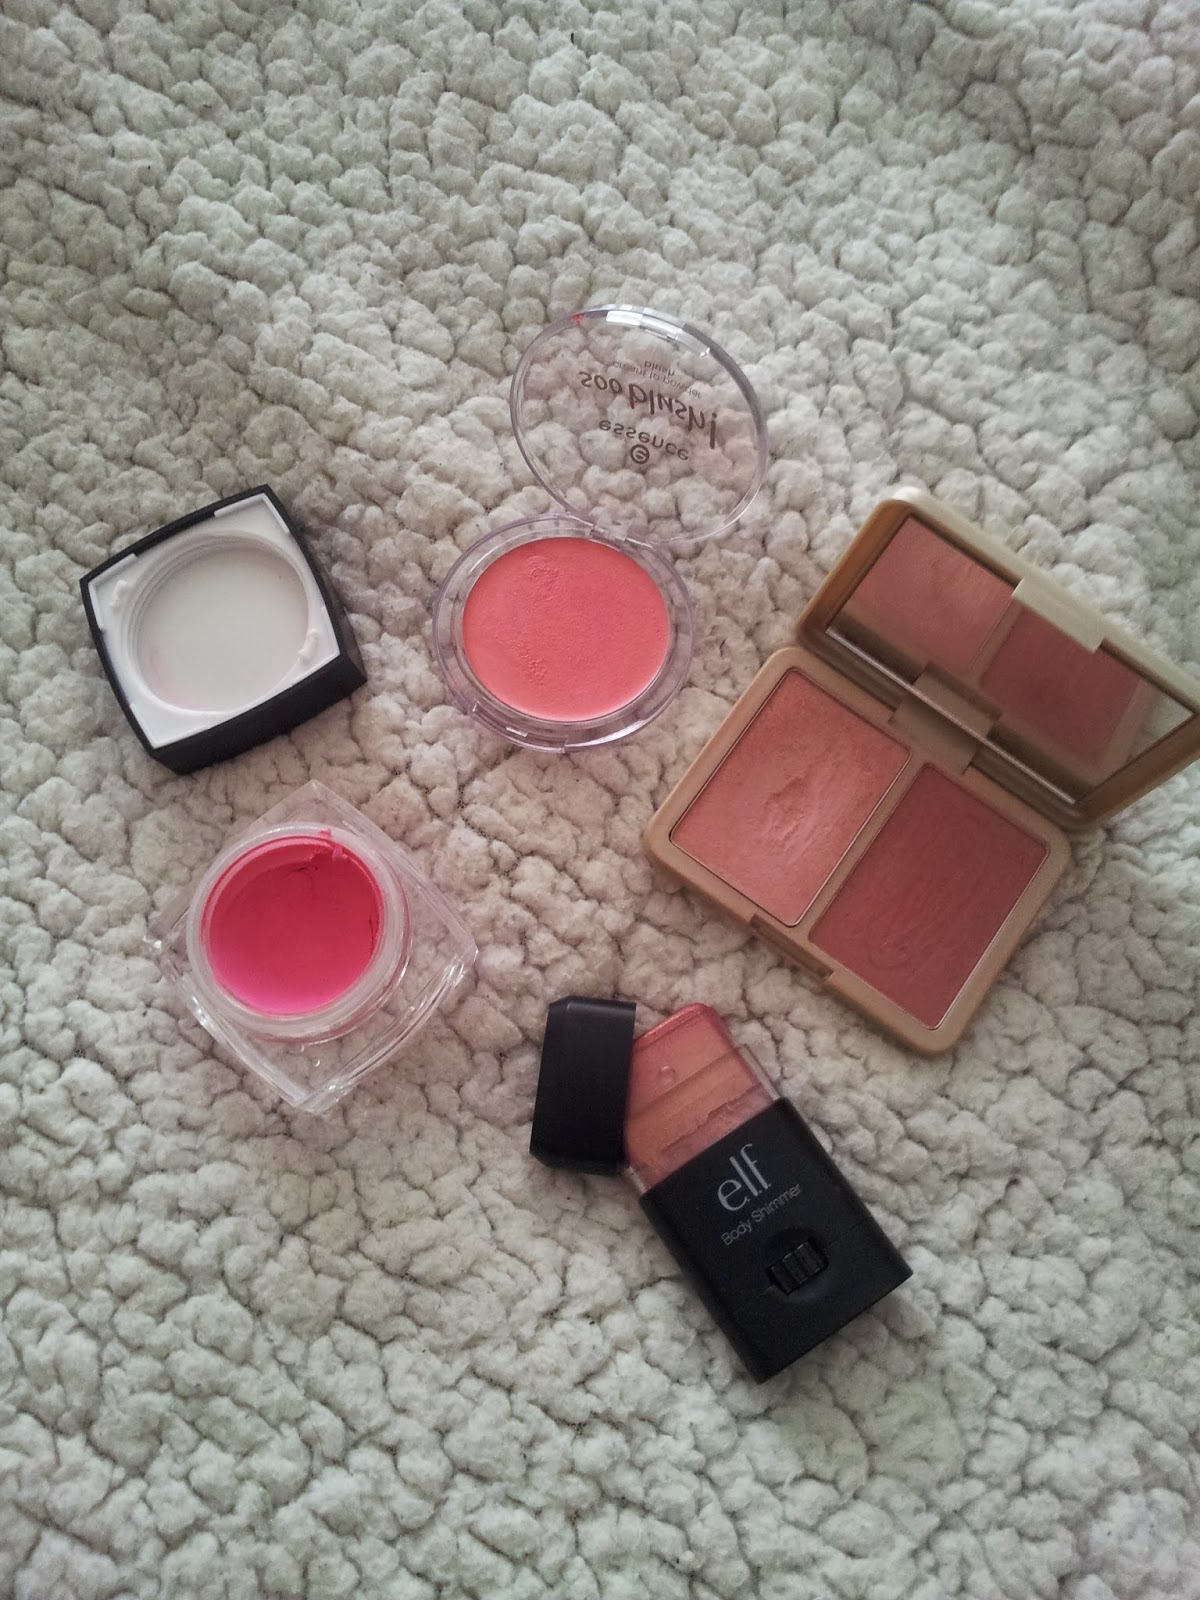 blush-maquillage-test-rose